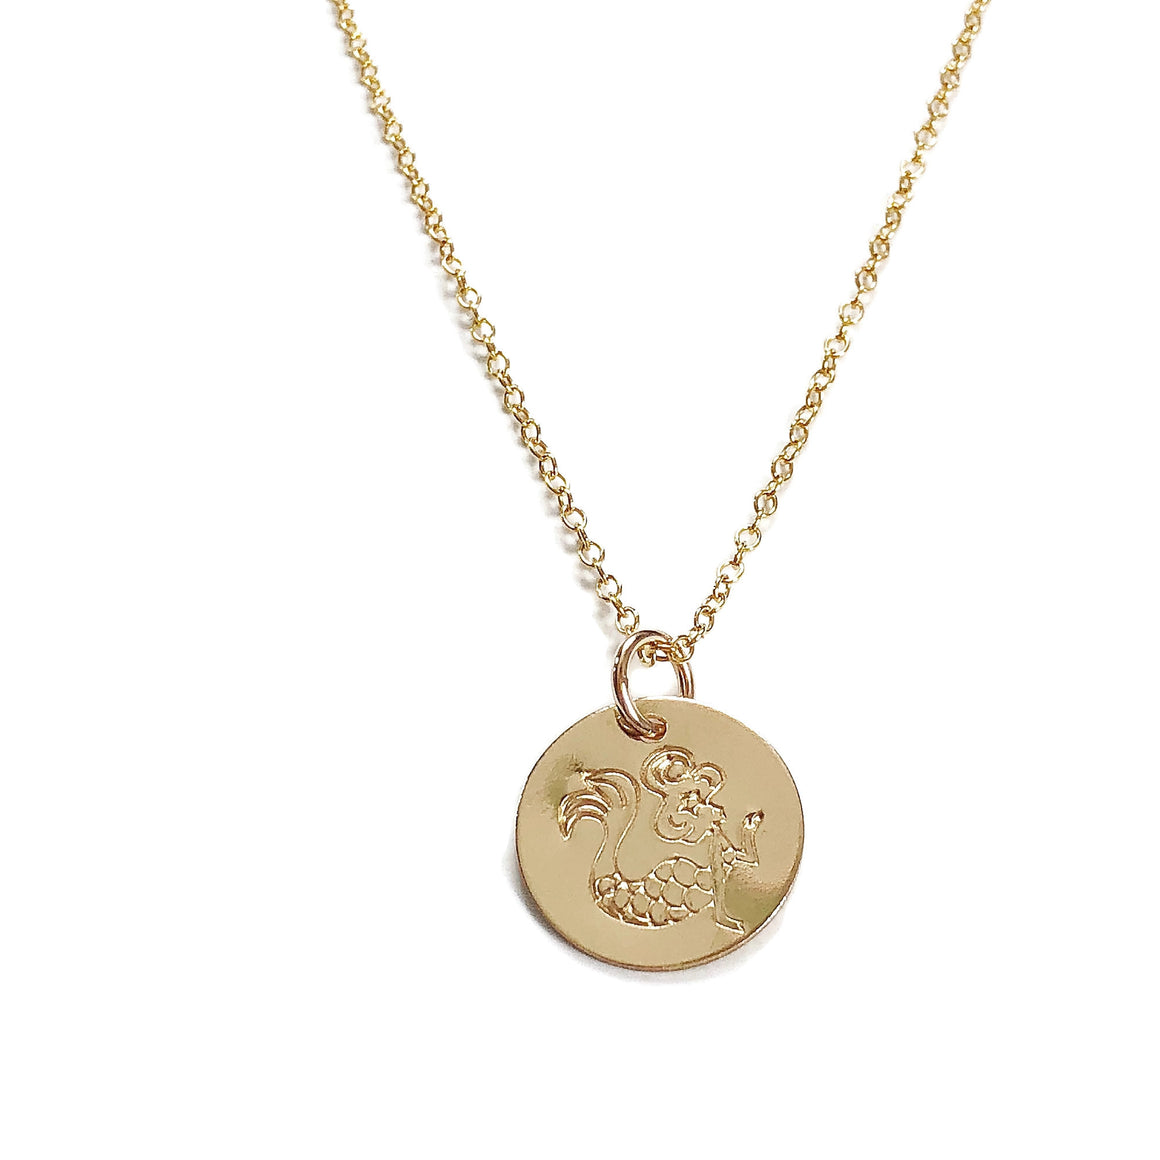 Marni LuHu Gold Mermaid Necklace